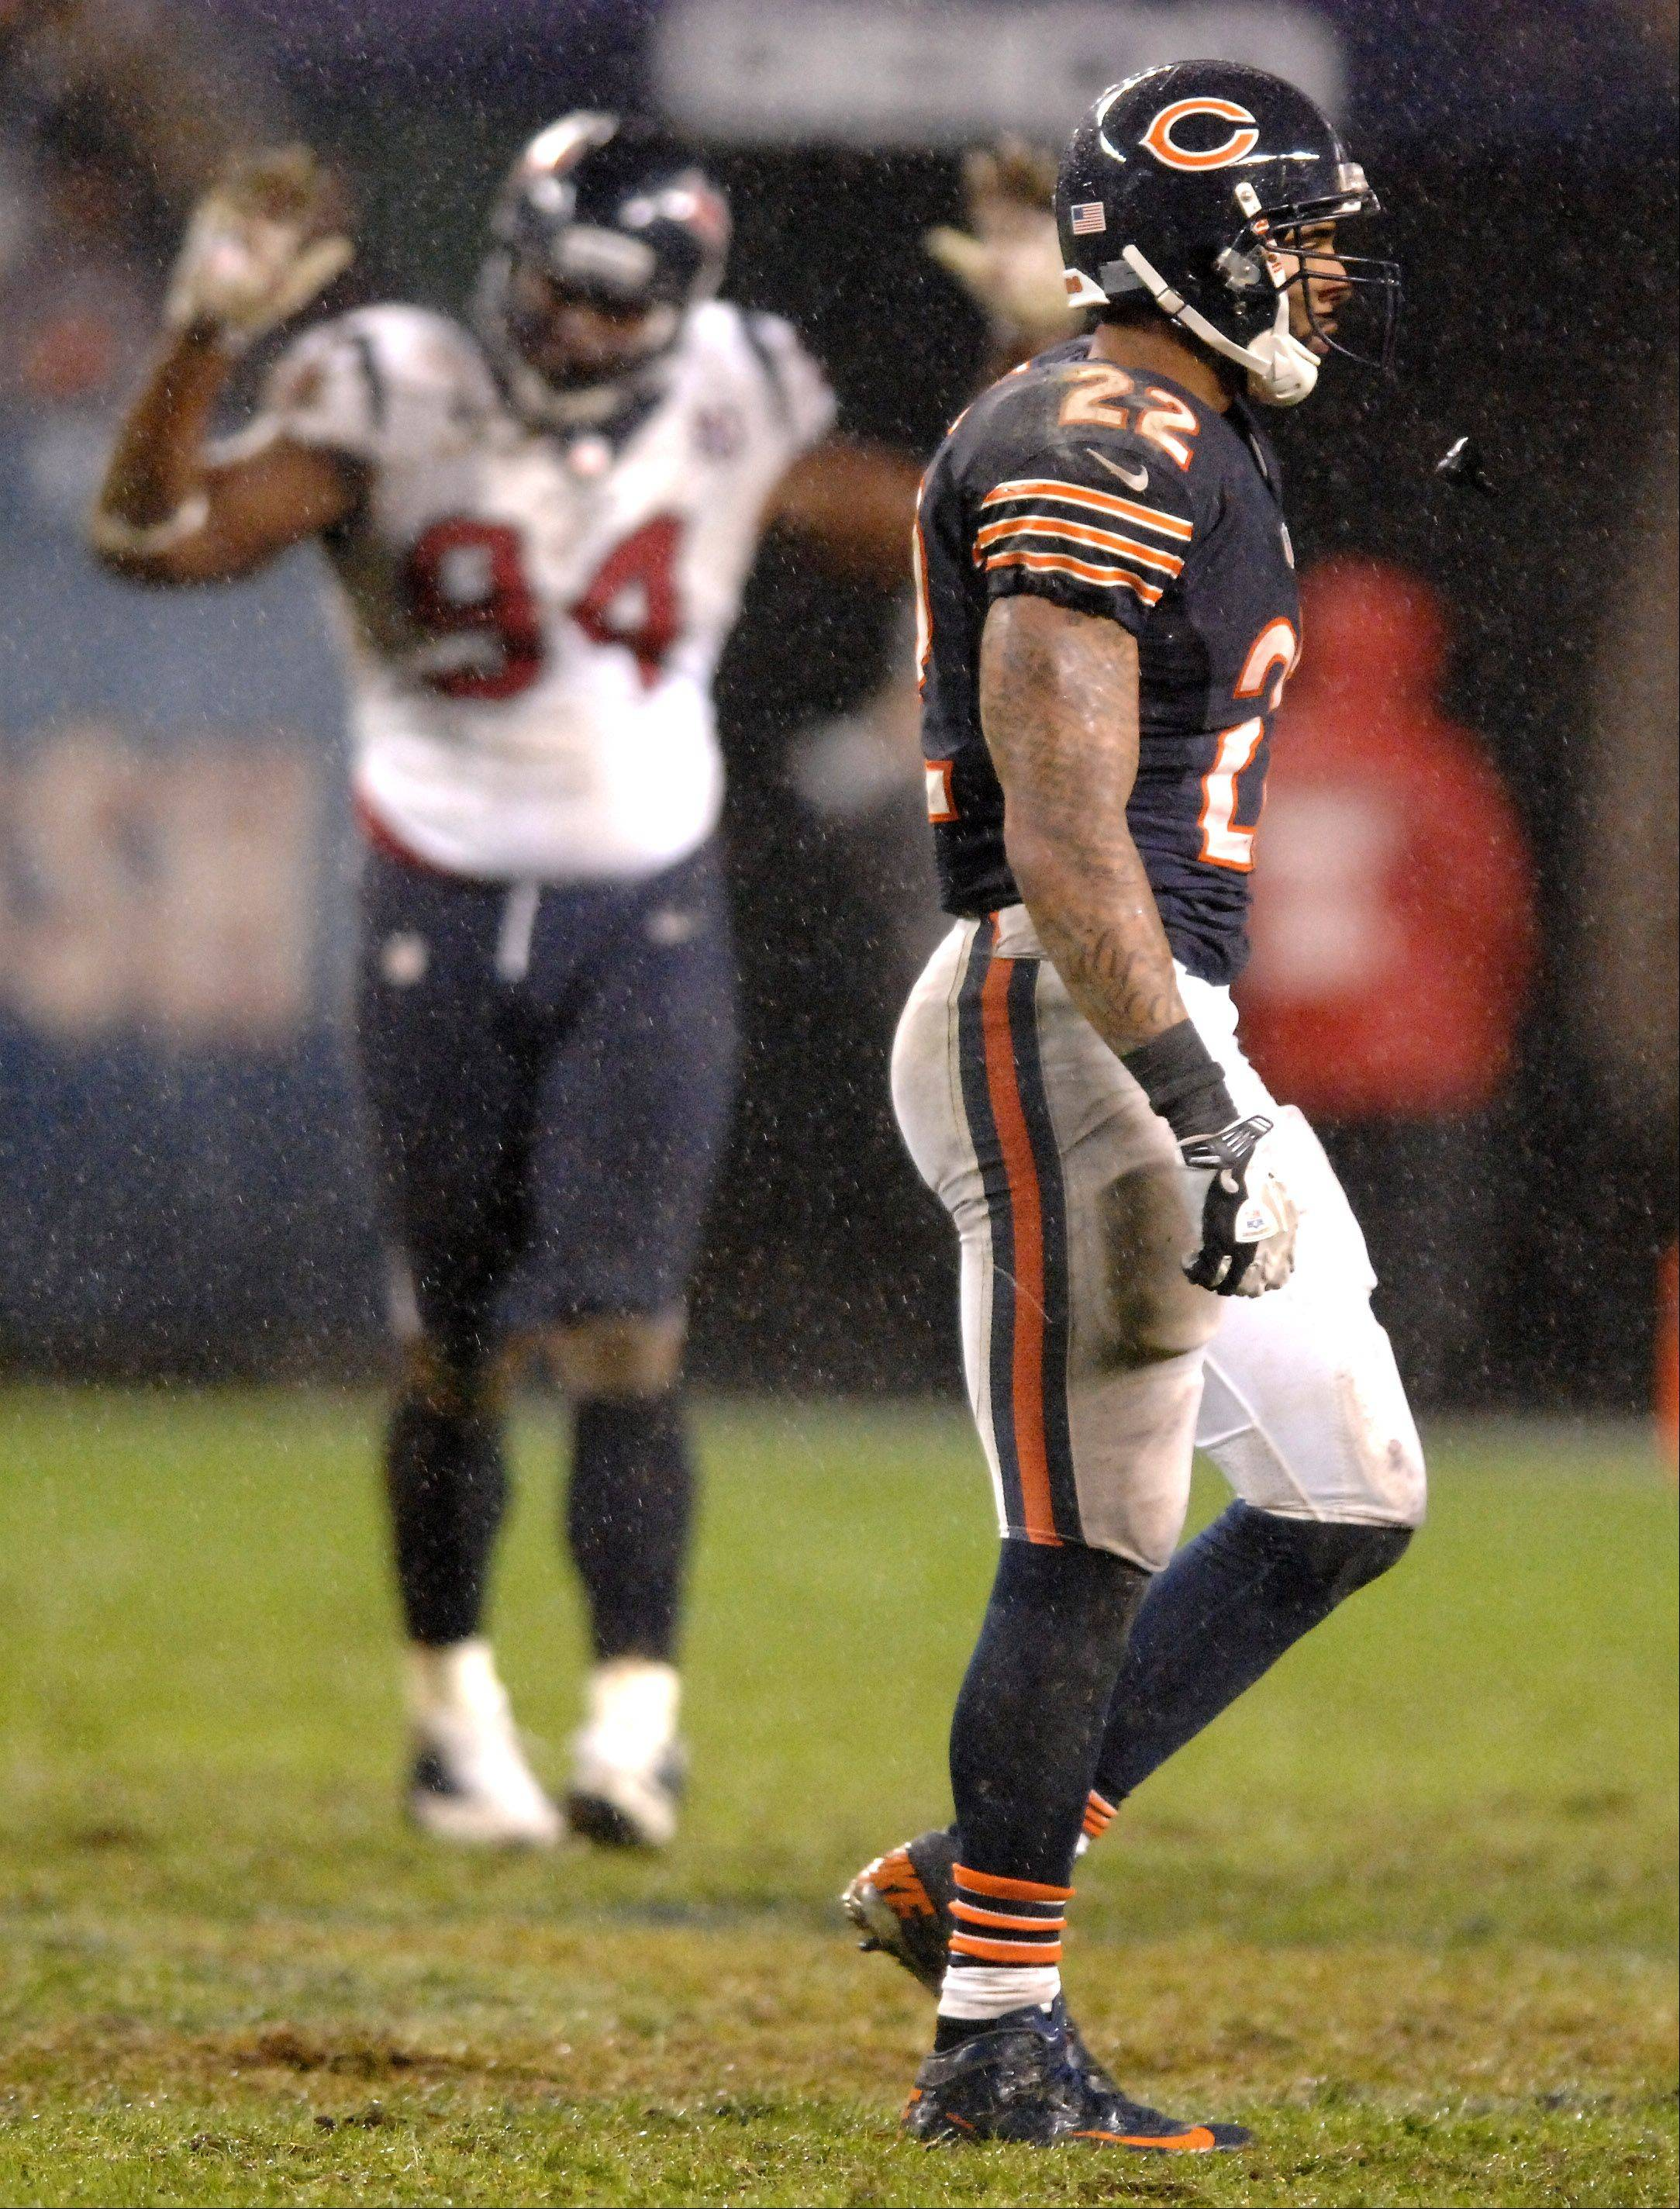 Chicago Bears running back Matt Forte (22) walks off the field after the Bears failed to convert on fourth down on their final possession.